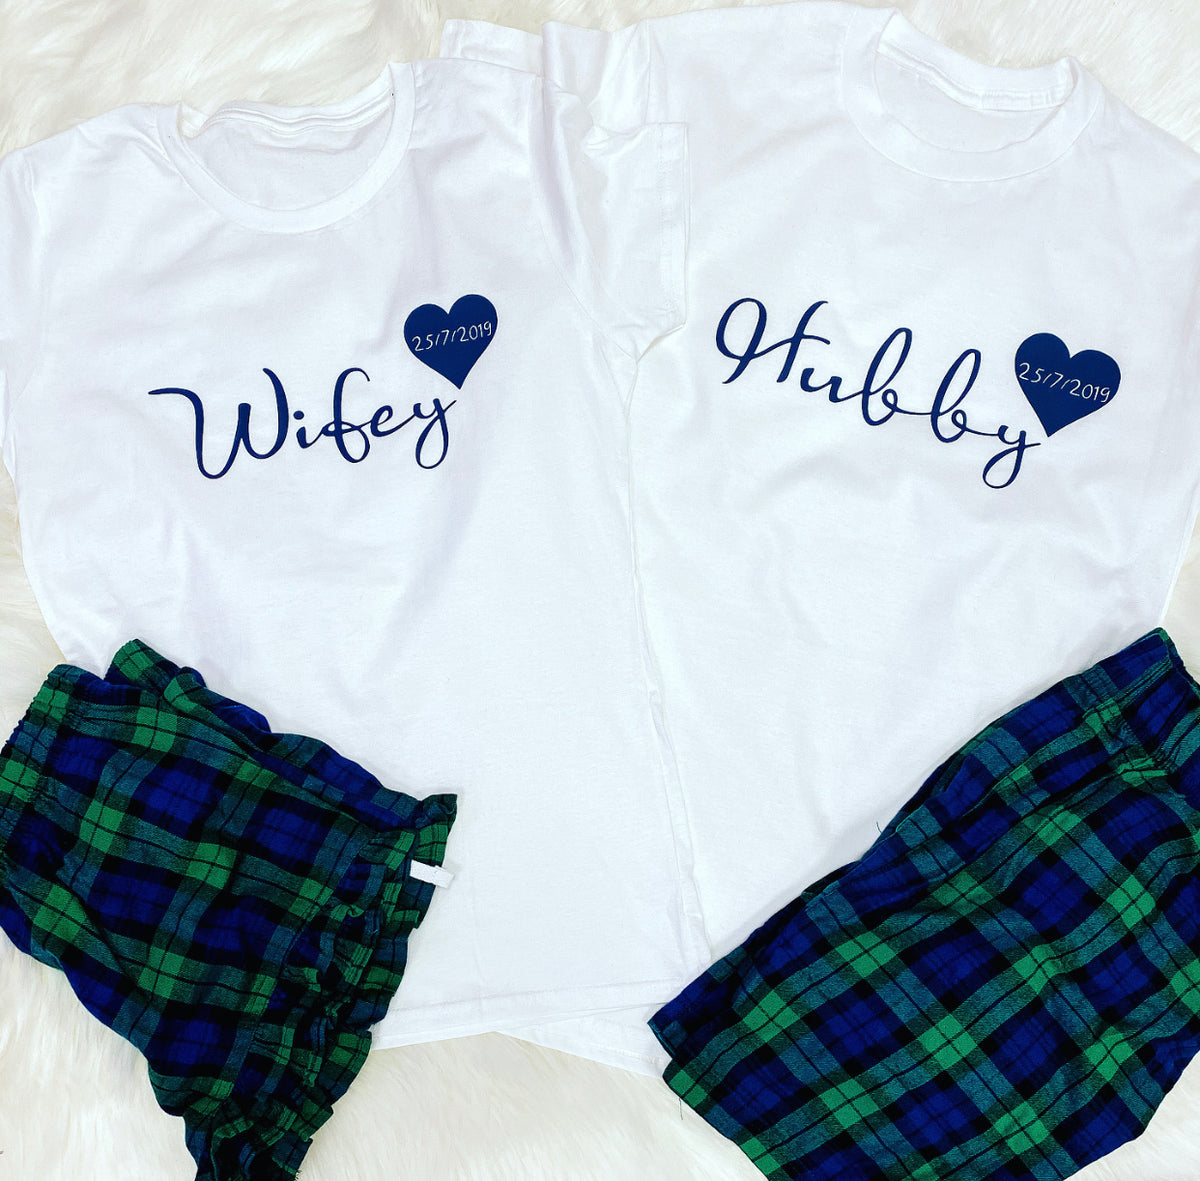 Tartan style Hubby and Wifey matching pyjamas